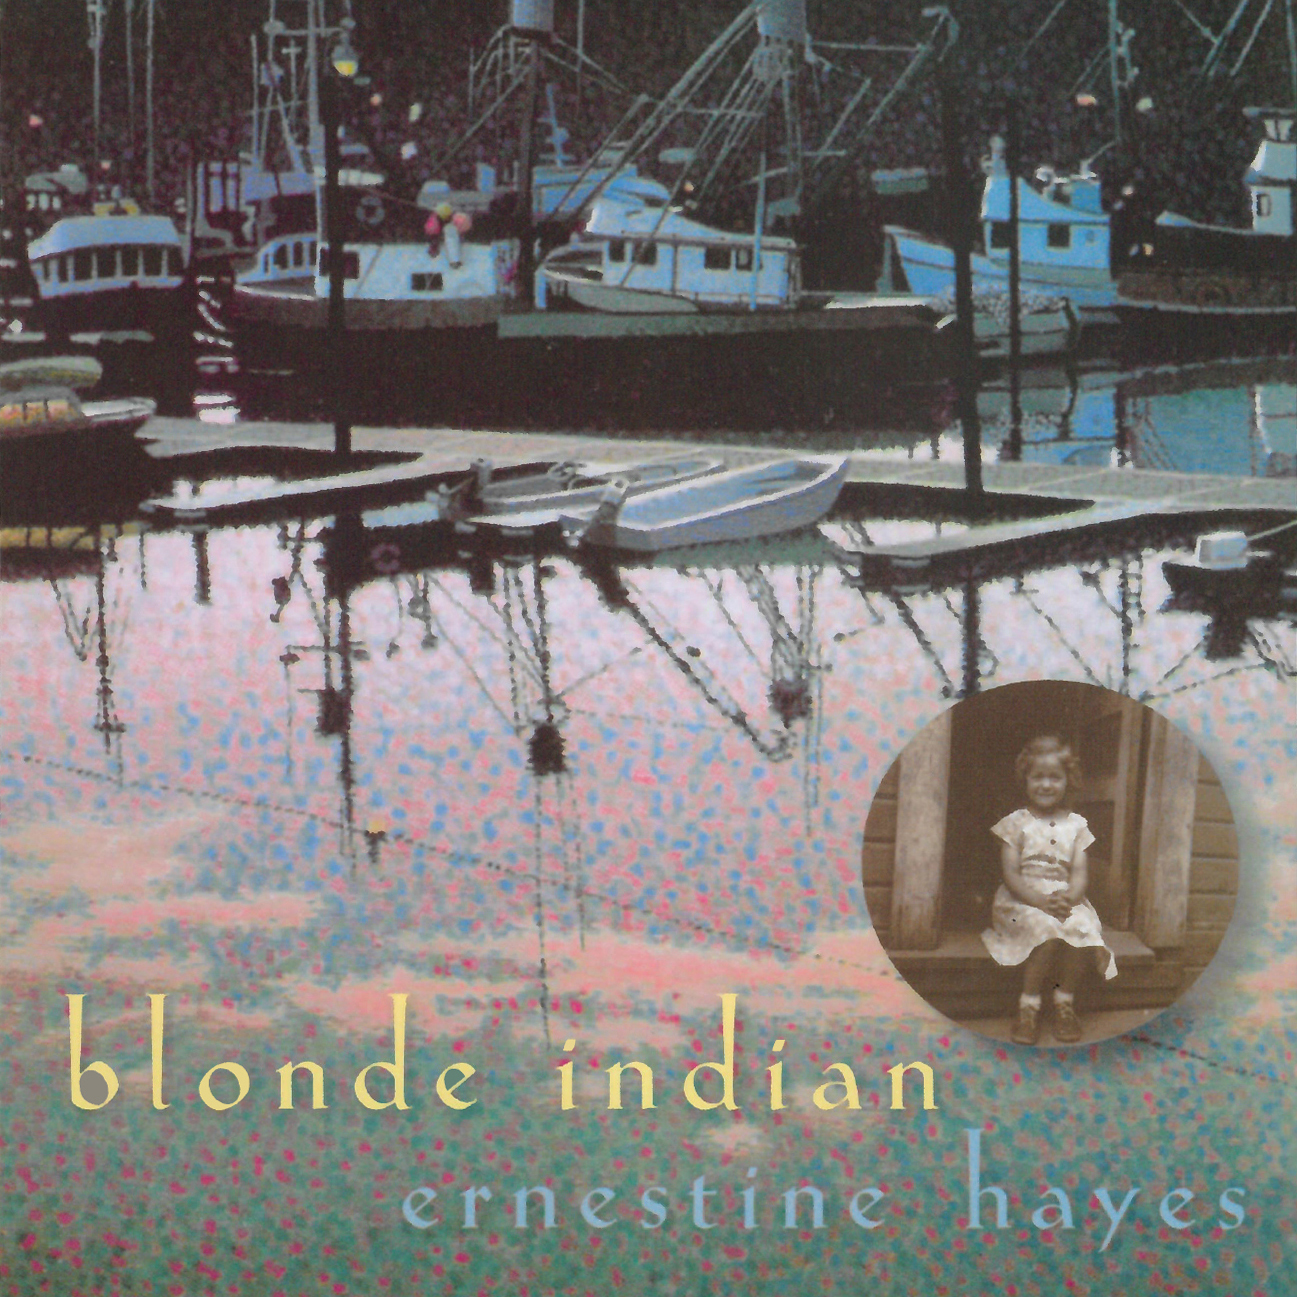 An image of the cover of Ernestine Henry's Blonde Indian